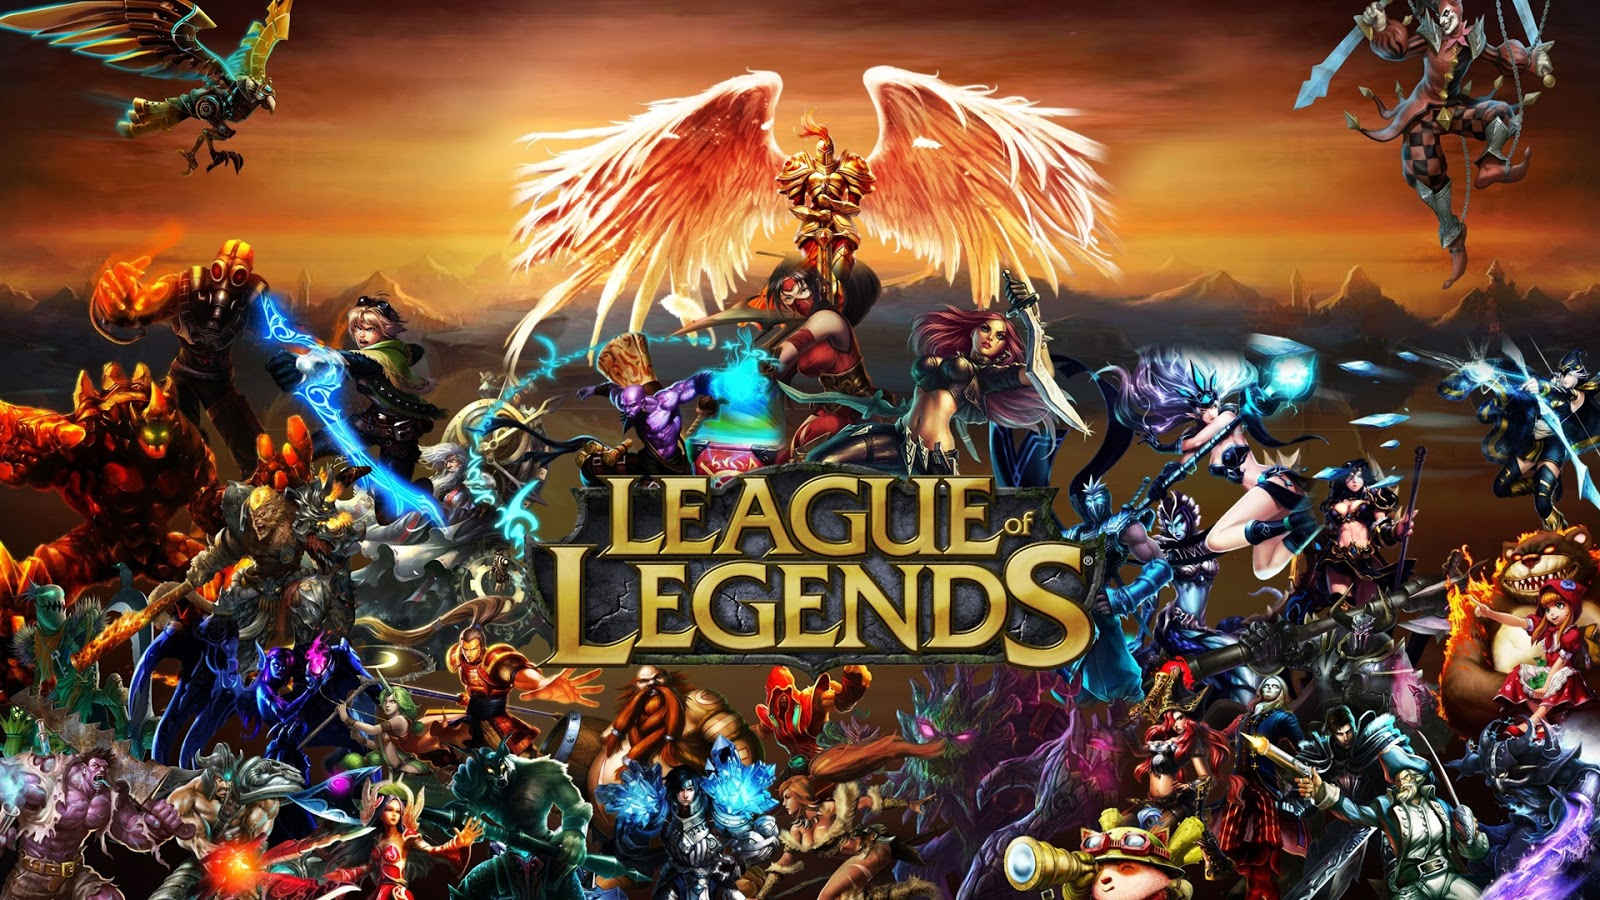 http://3.bp.blogspot.com/-4lsv7_LUBsY/UIbo-7vRMtI/AAAAAAAAAYQ/Ugu5fahOhk4/s1600/League-of-Legends-Wallpapers-HD-1080p.jpg